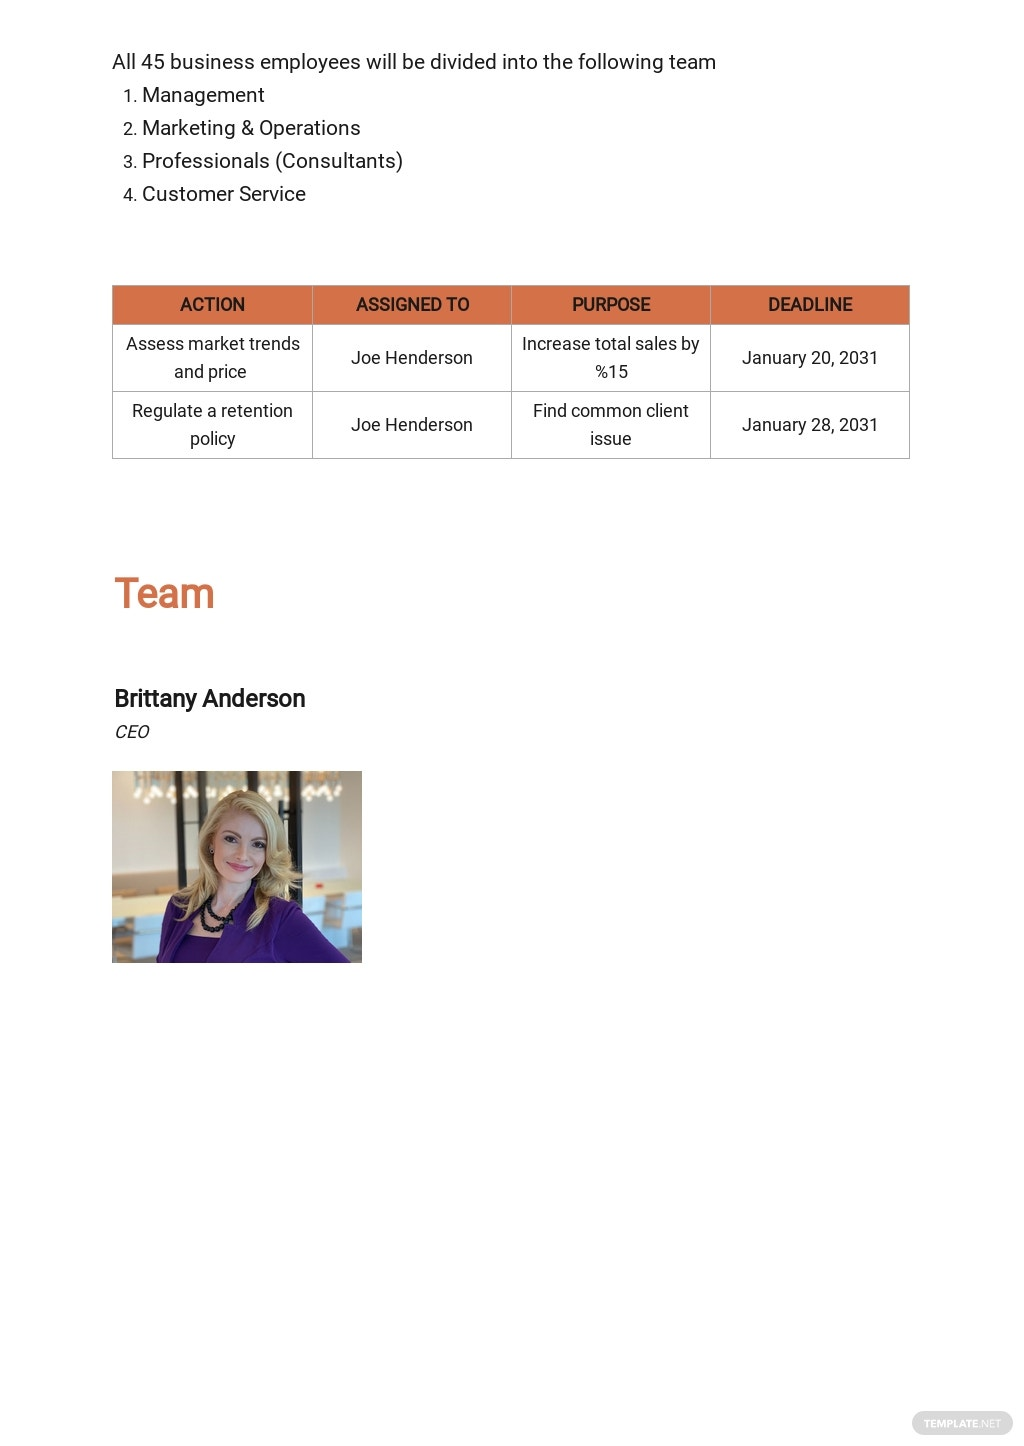 Human Resources Consulting Business Plan Template 5.jpe